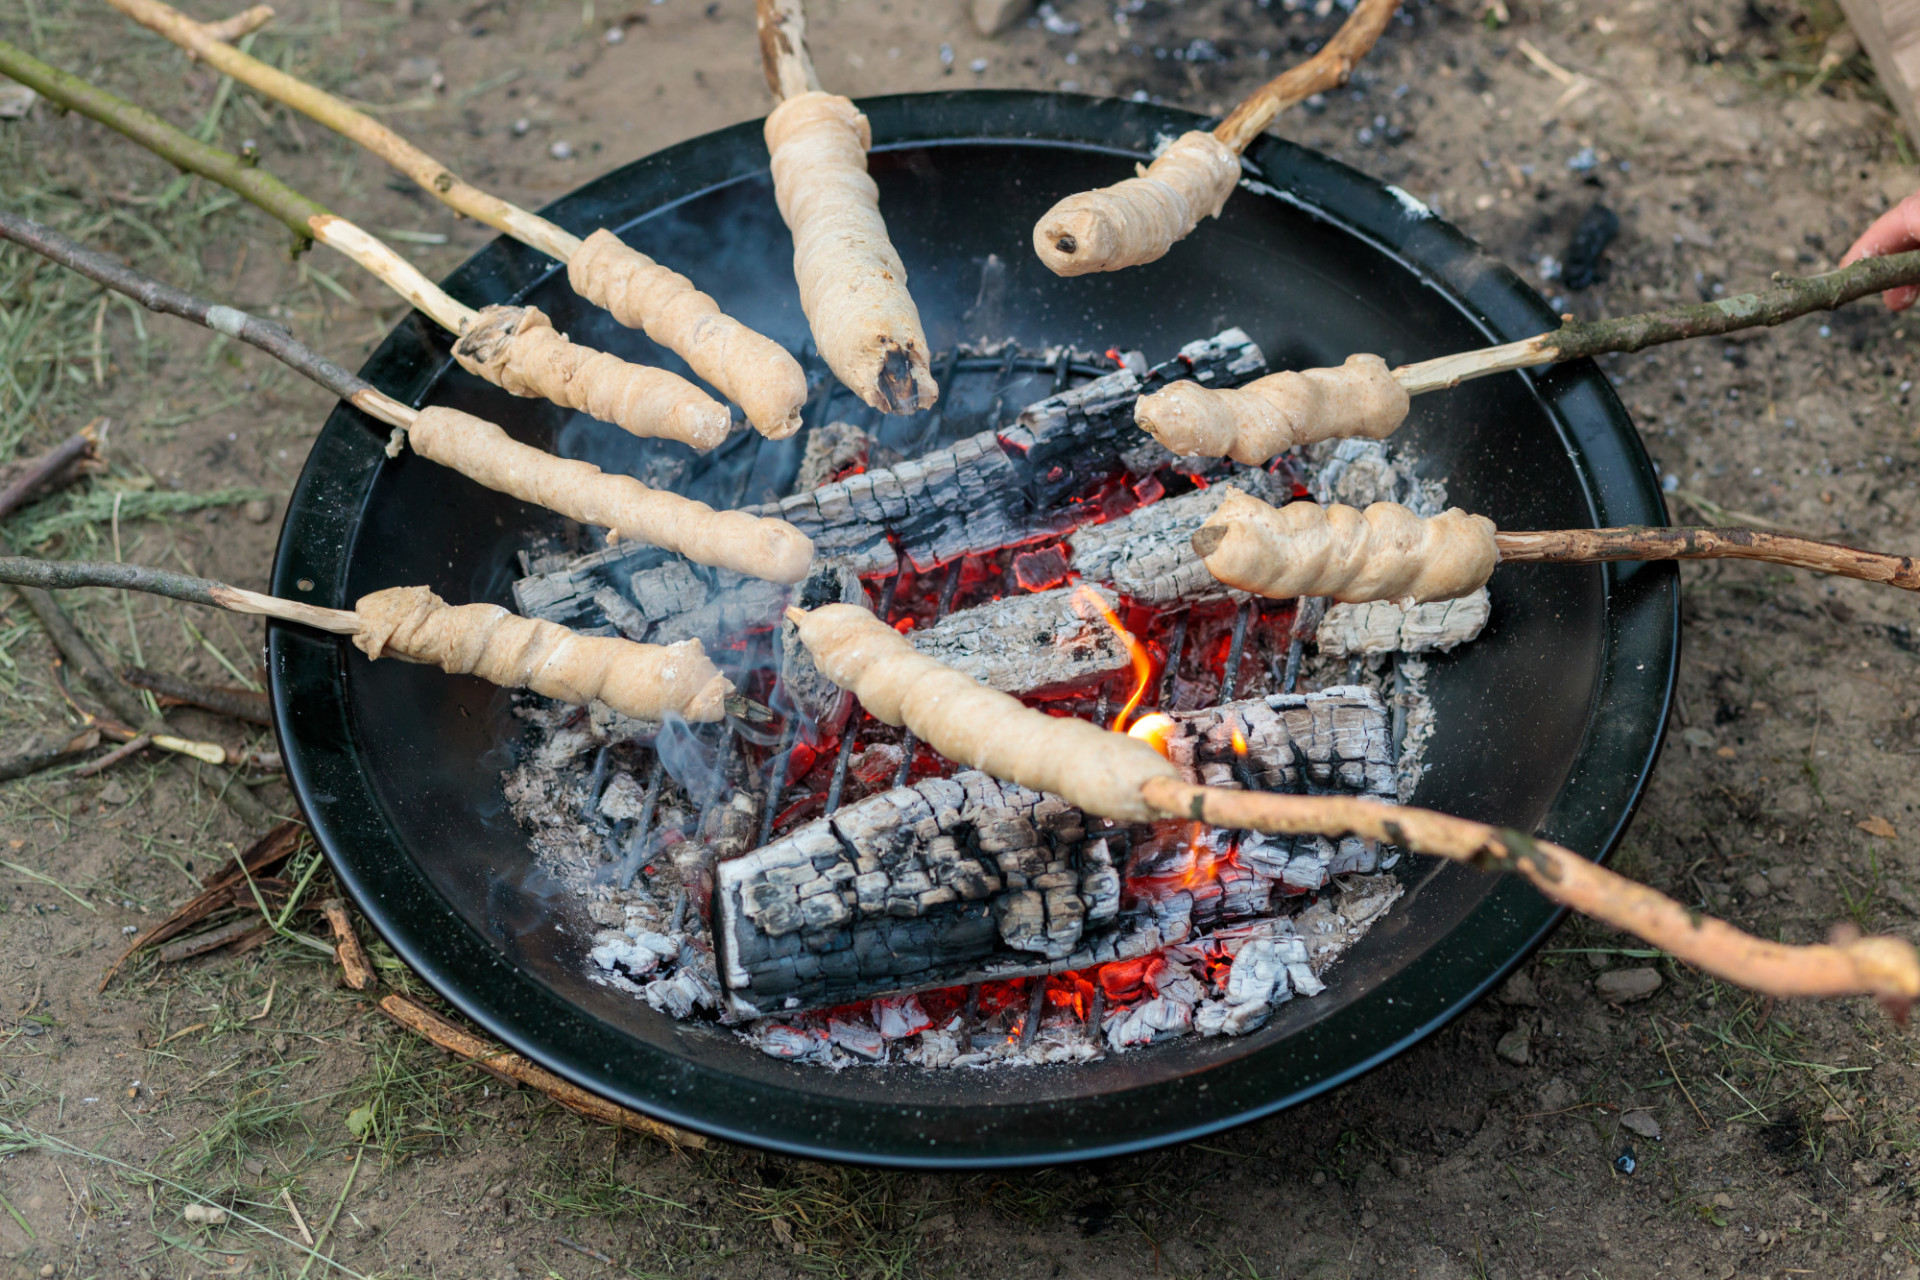 Bread on sticks is grilled over the fire